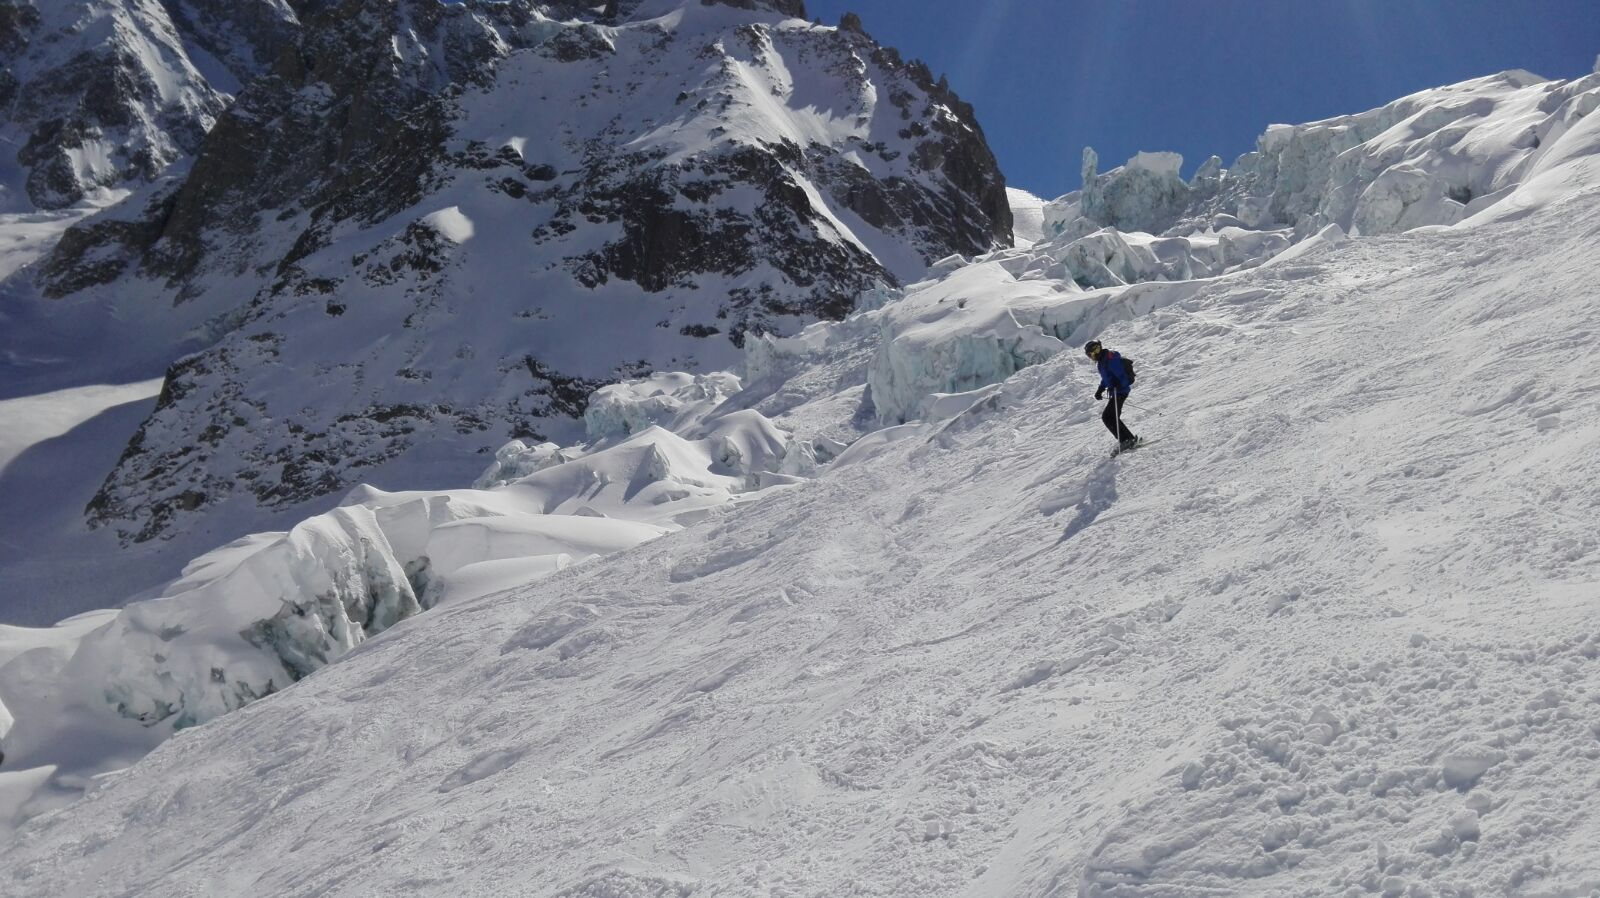 vallee blanche guide alpine proup (36)